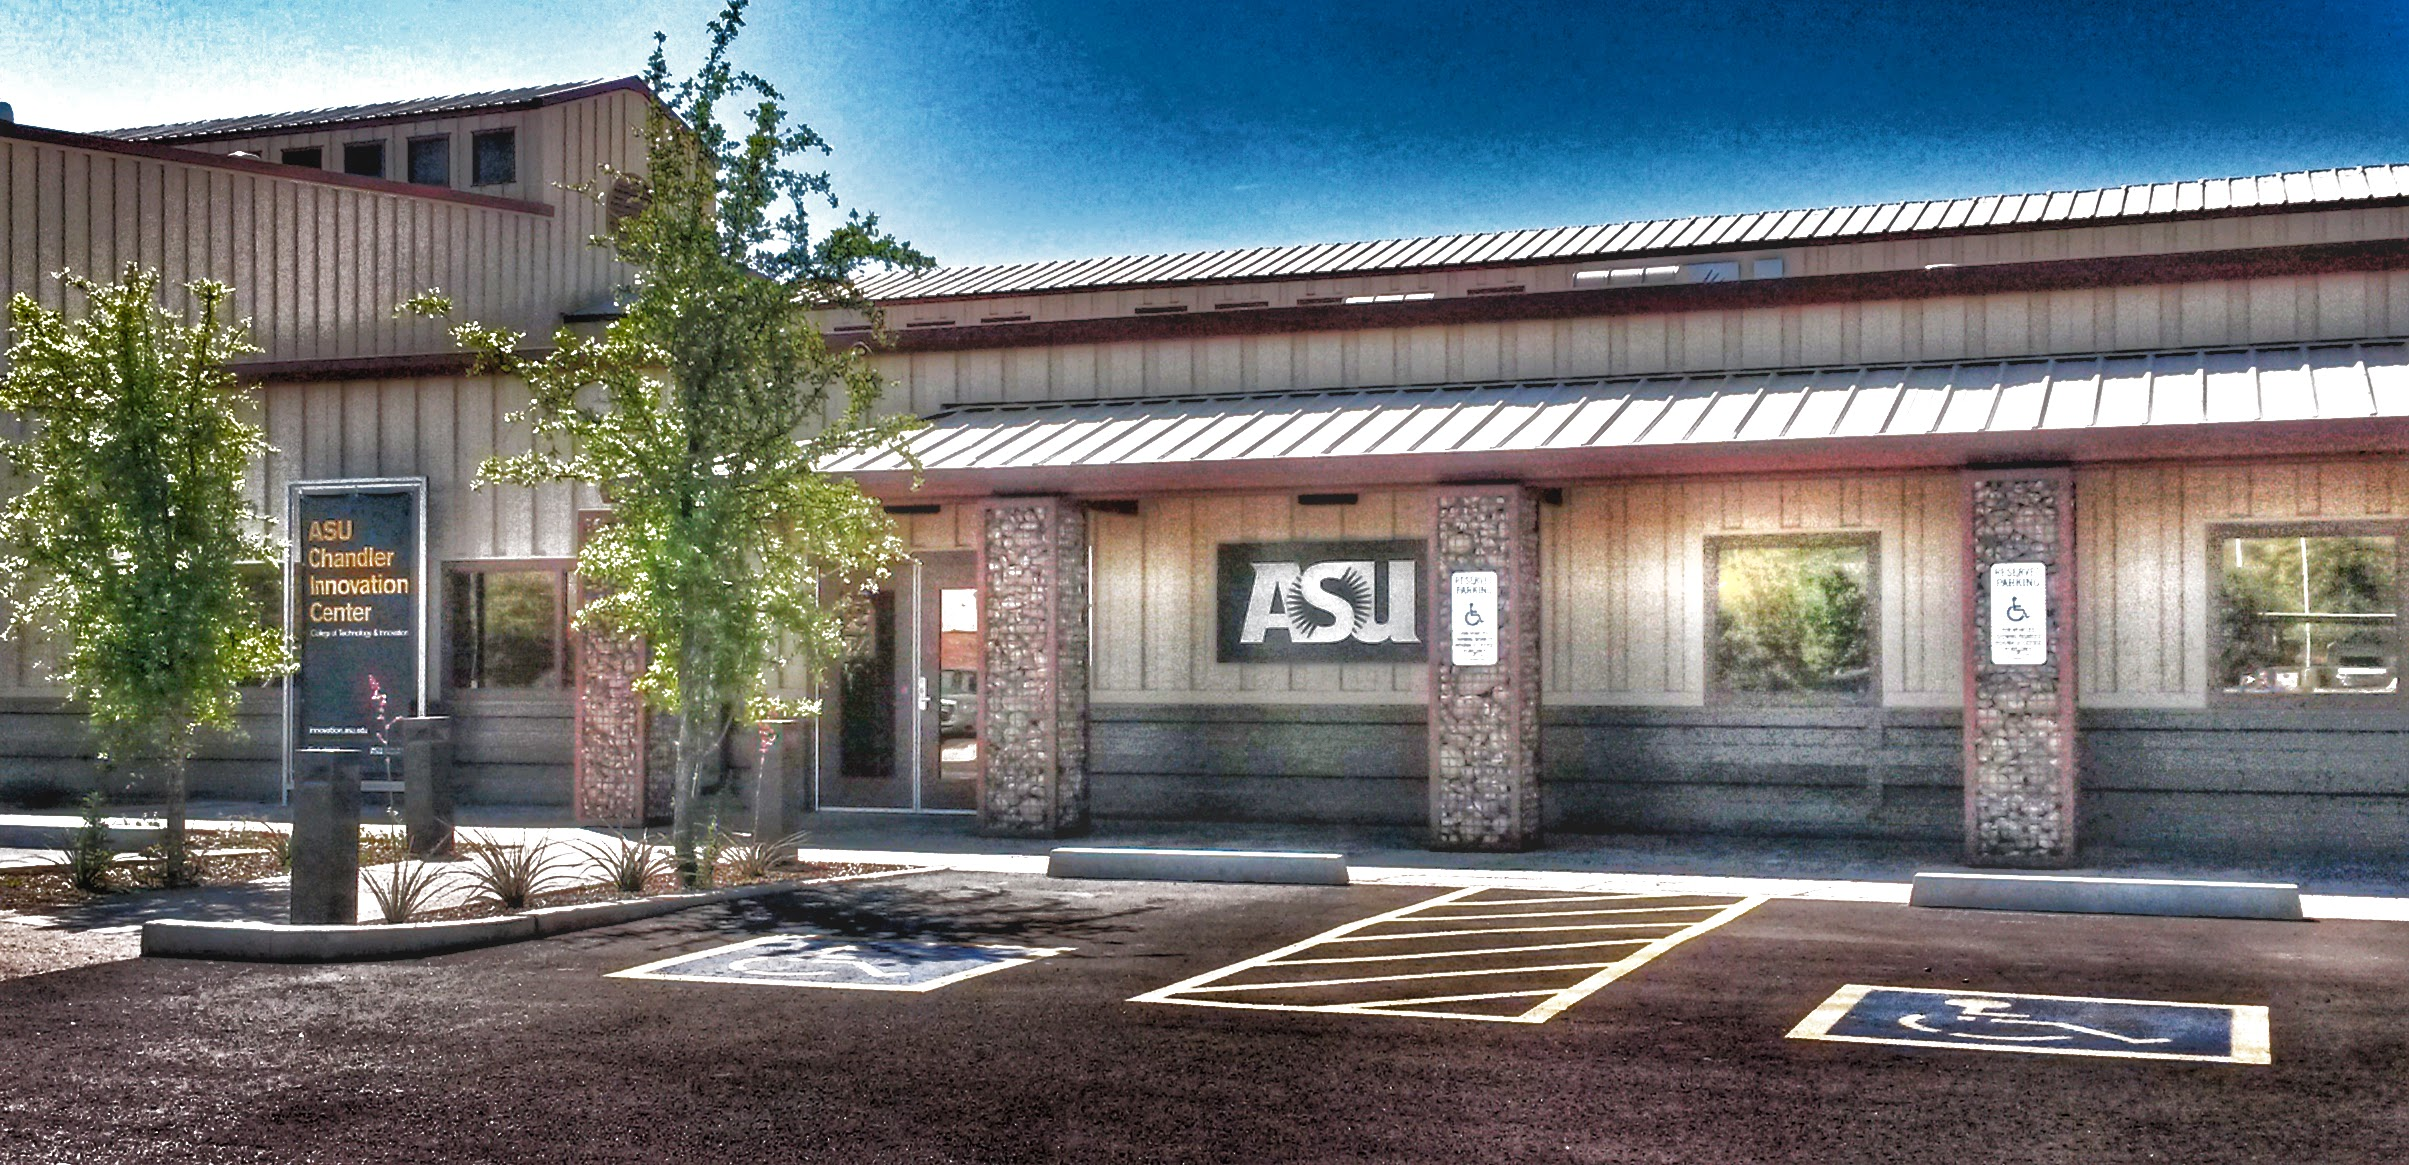 ASU's Chandler Innovation Center in Chandler, Arizona